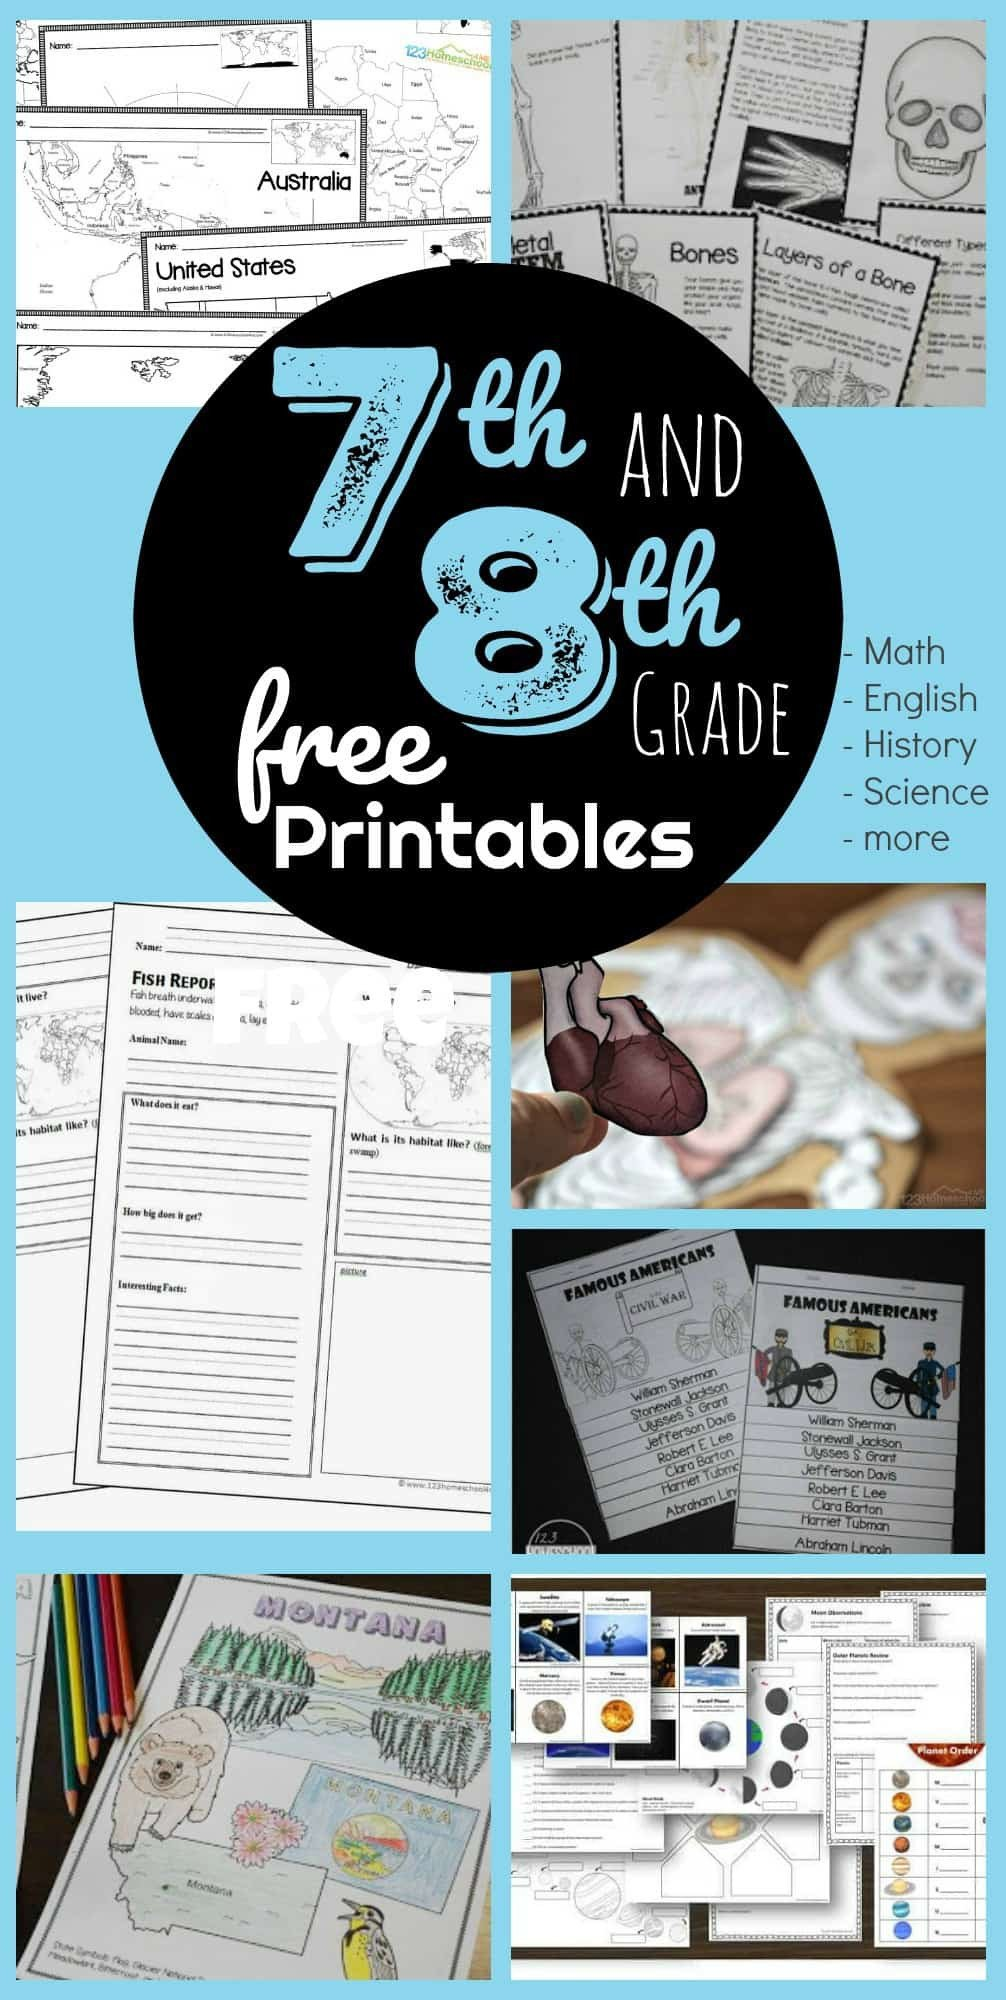 Grade 7 social Studies Worksheets Free 7th & 8th Grade Worksheets